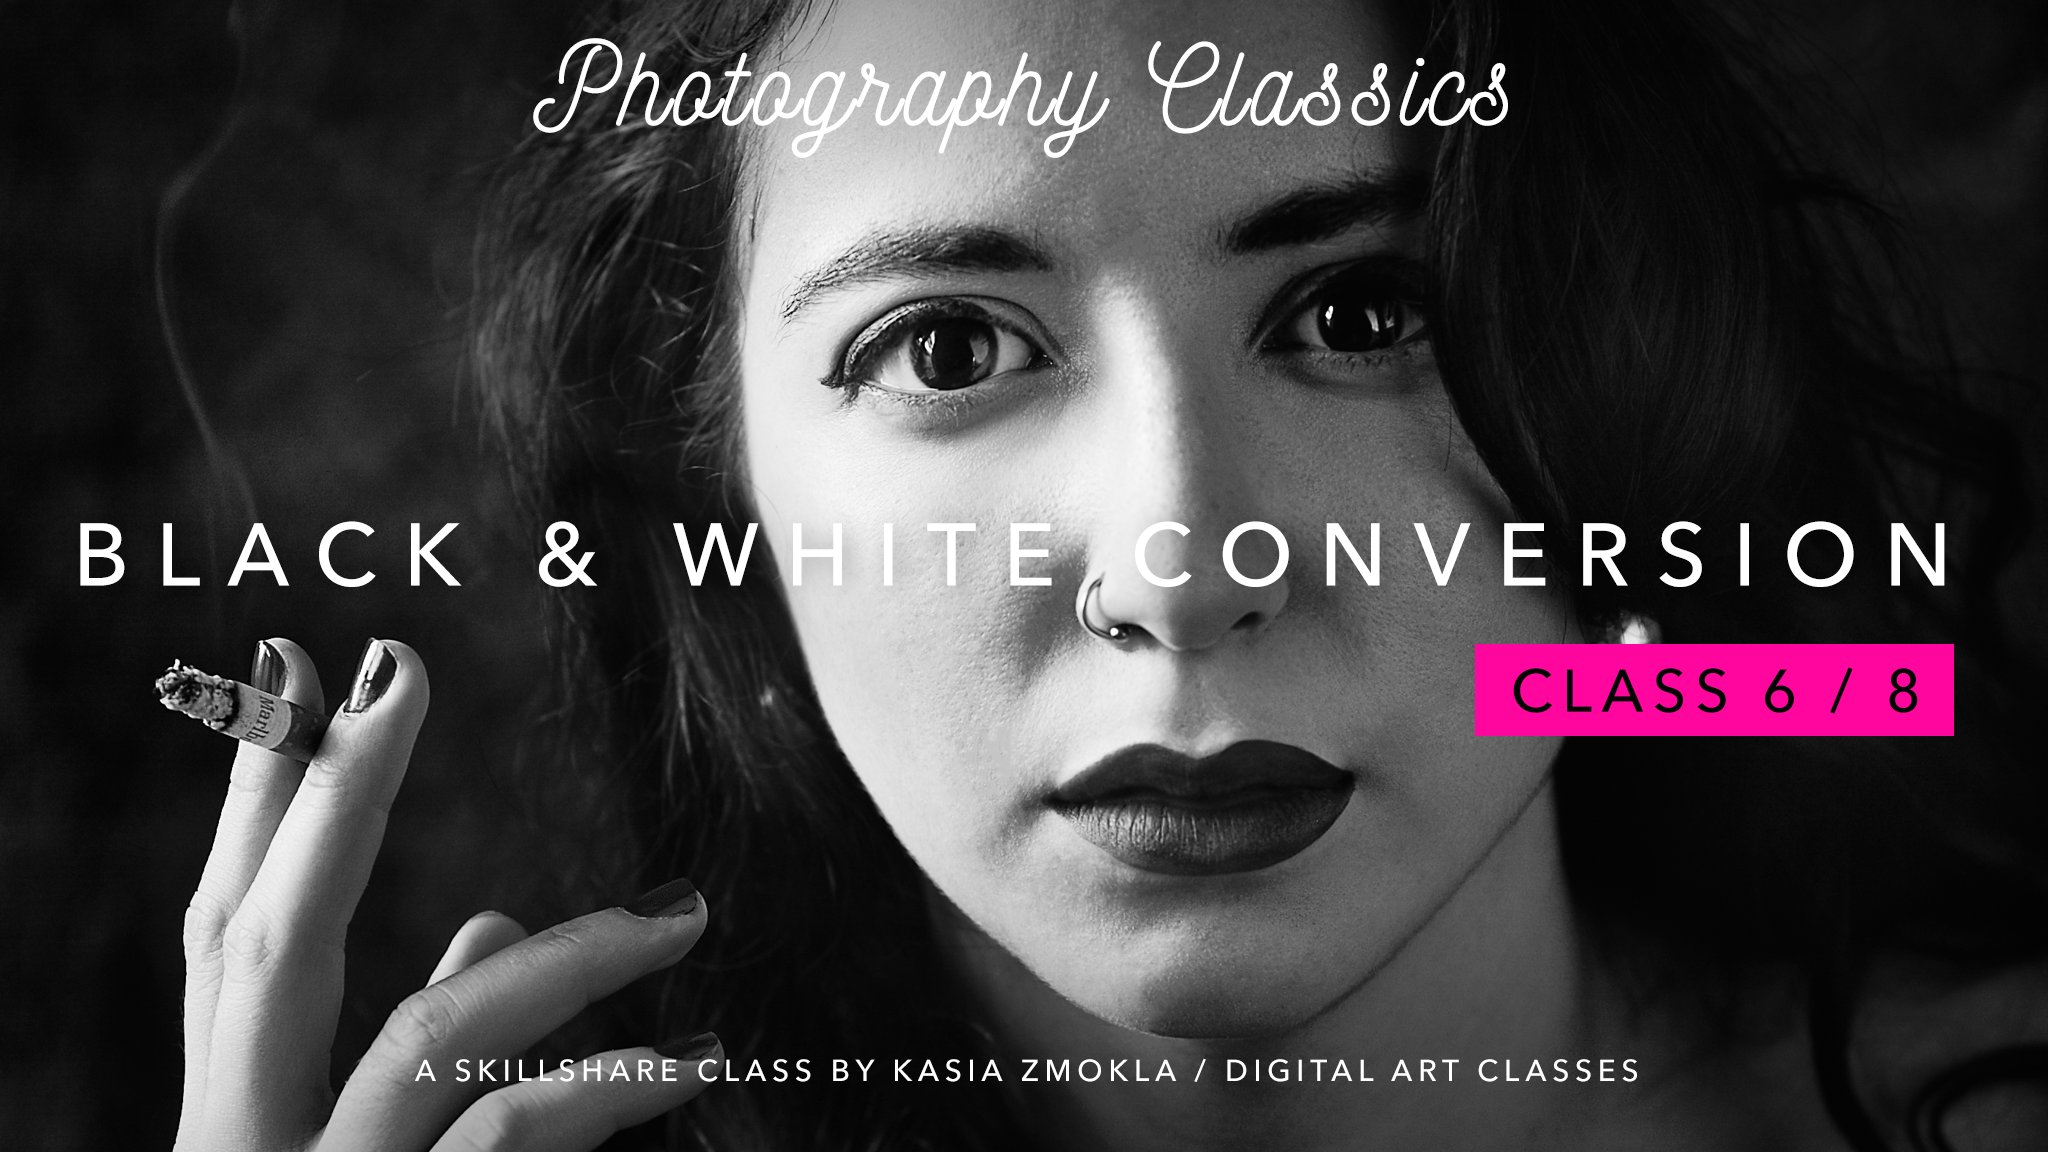 6 8 photography classics artistic black and white conversion techniques in photoshop